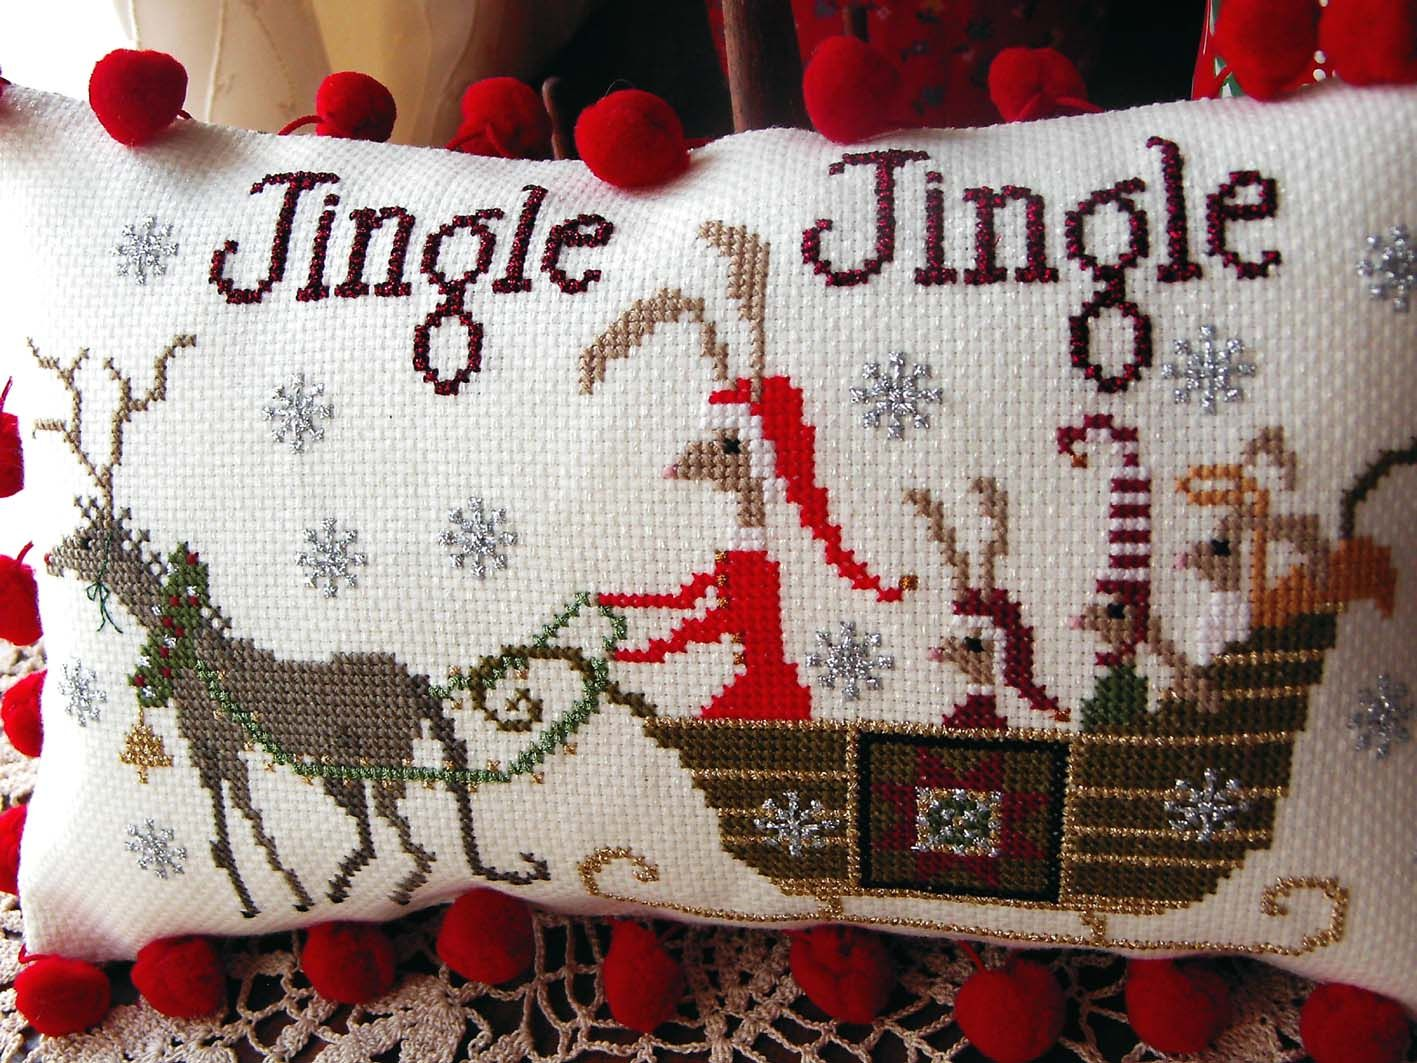 MY CROSS STITCH: Hares' Christmas by Plum Street Samplers